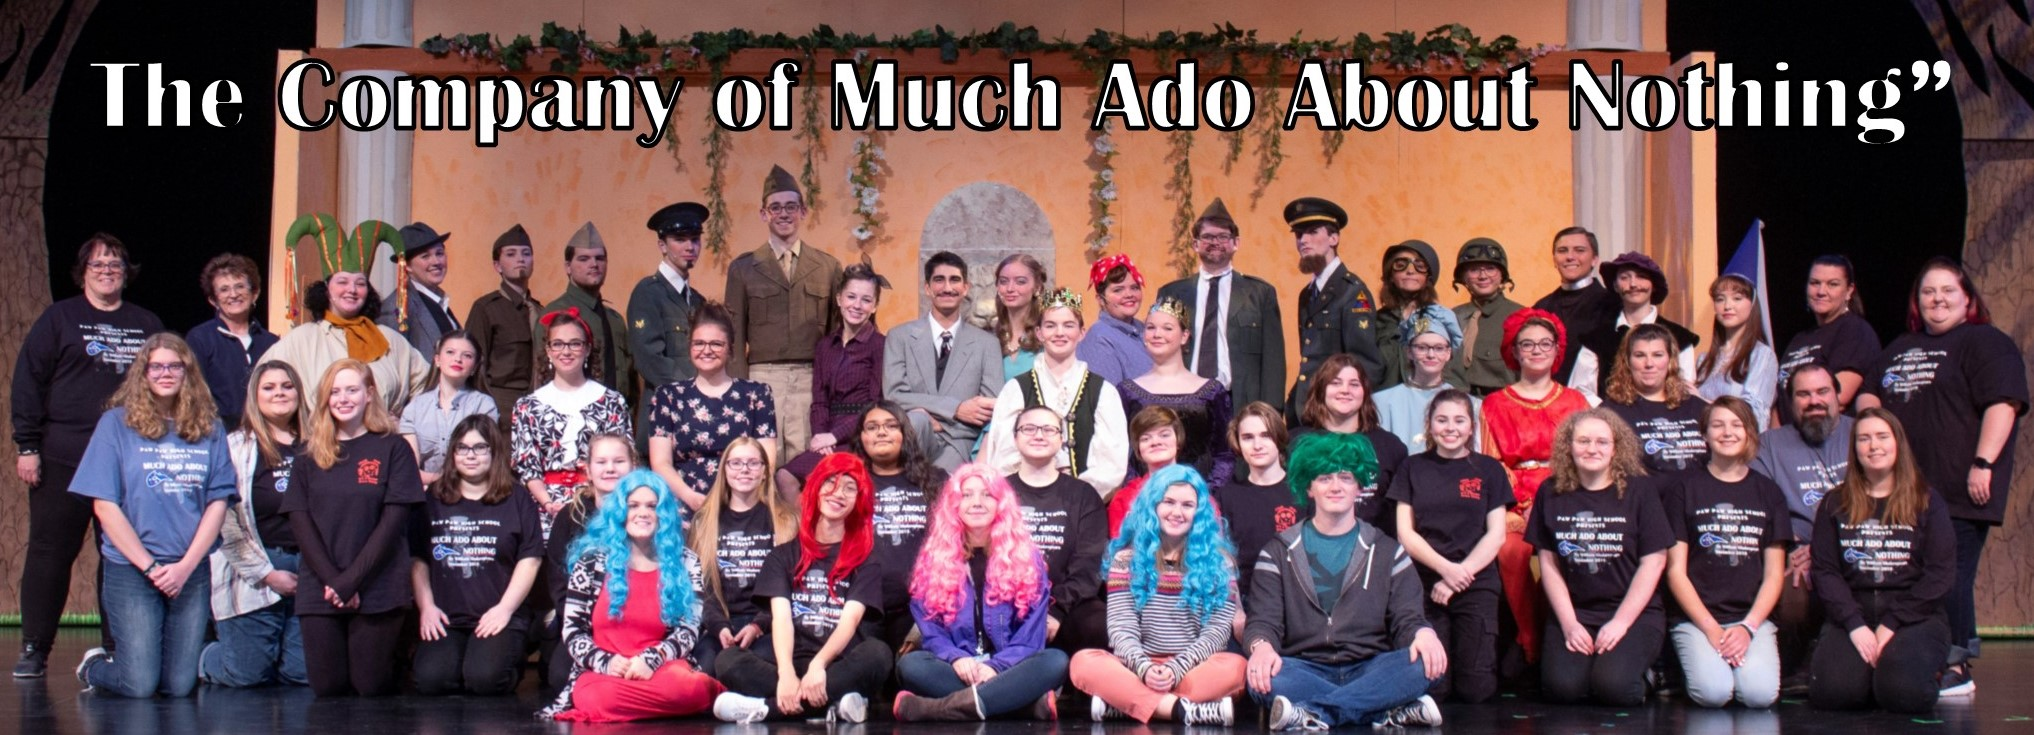 1582806781-much_ado_company_photo